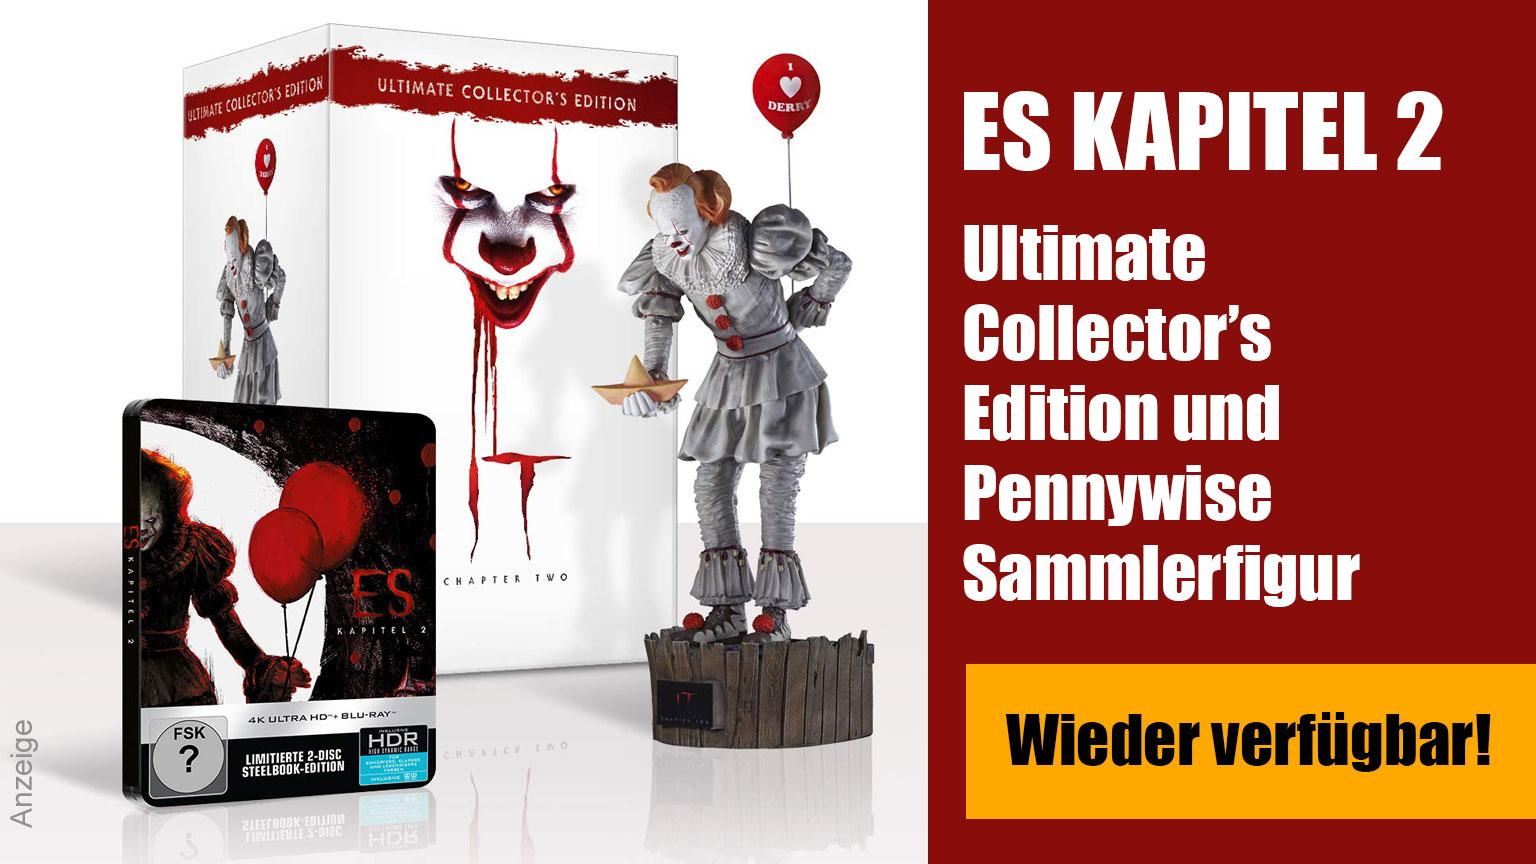 ES Kapitel 2 Limited Collectors Edition